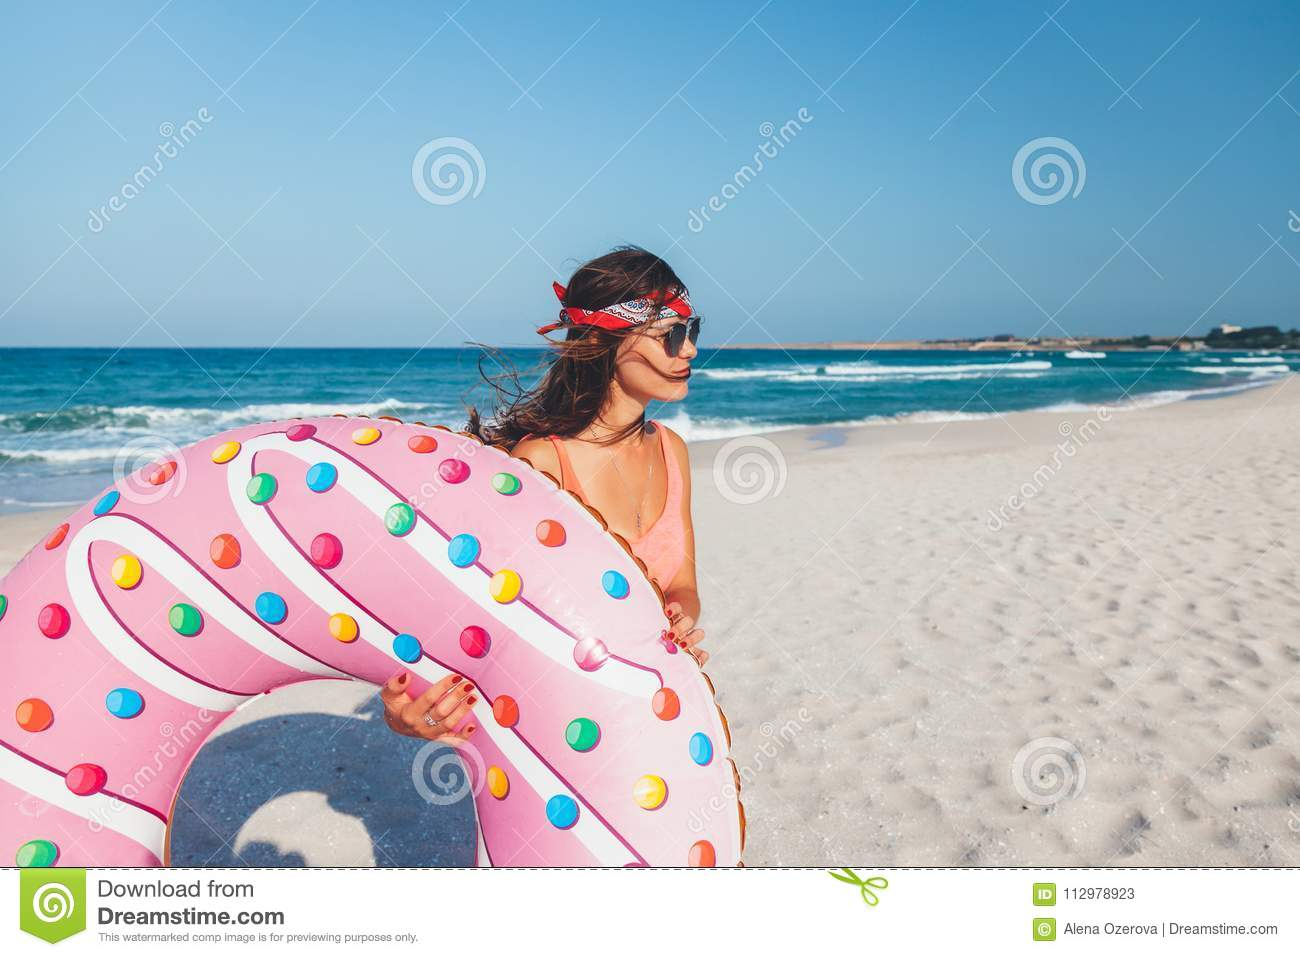 Girl with donut lilo on the beach